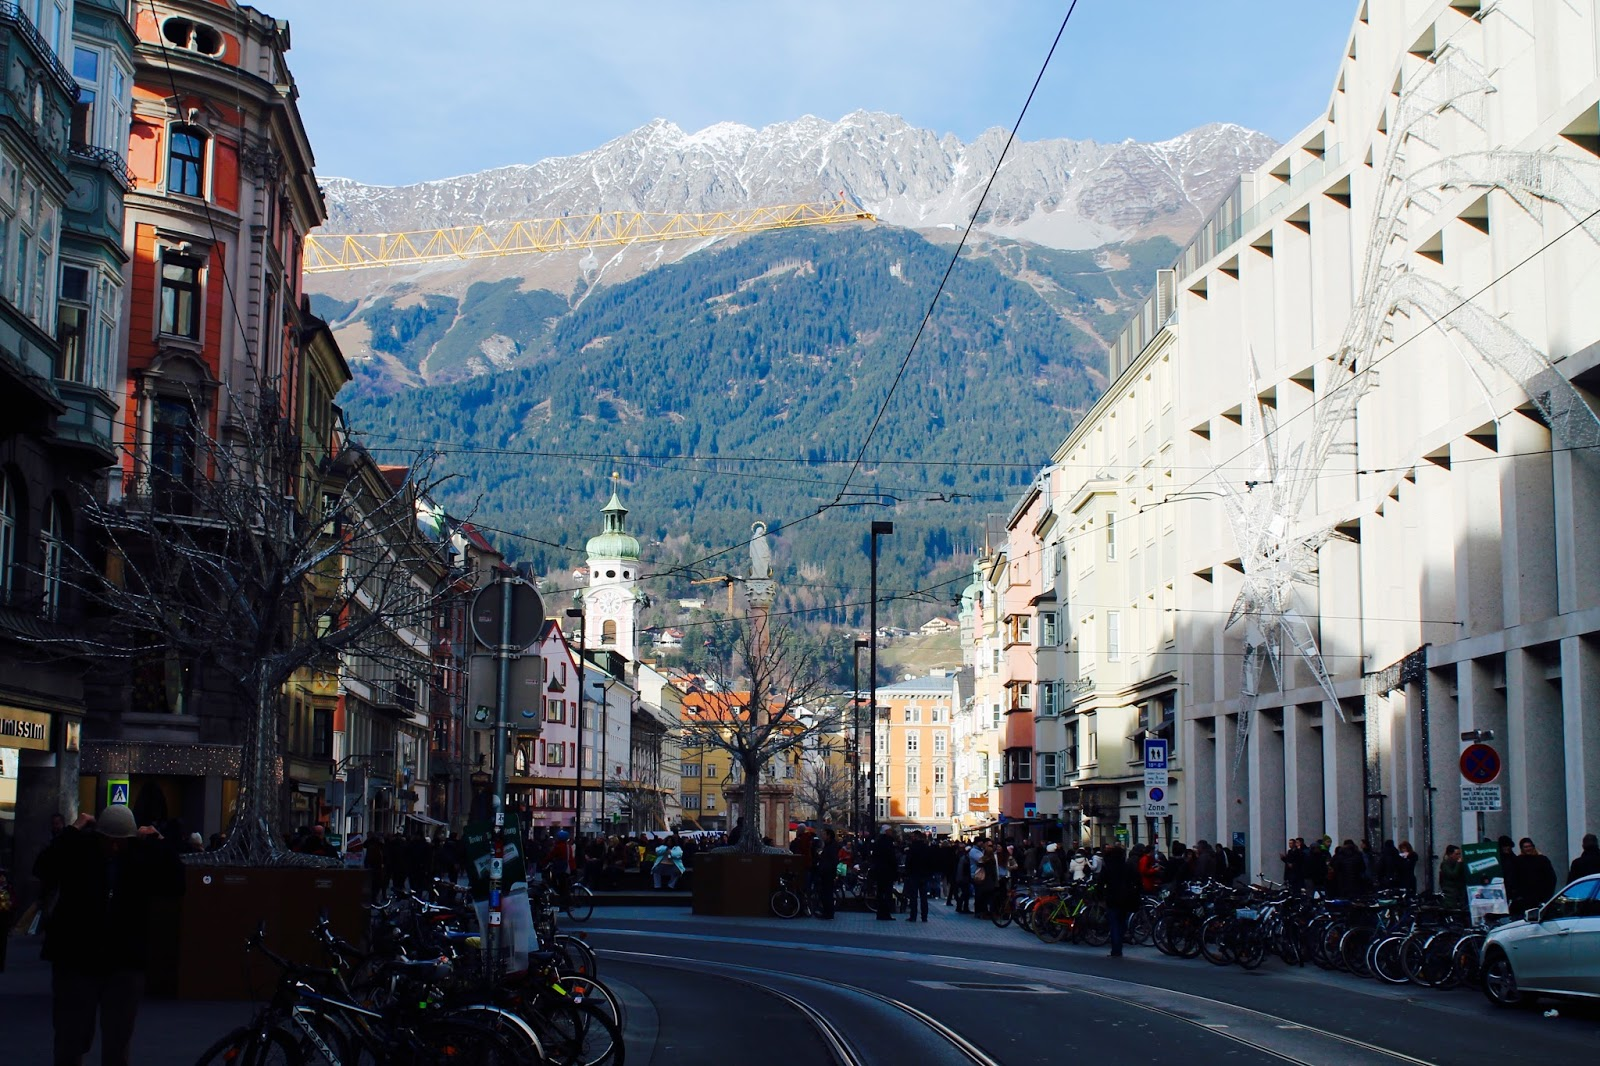 Innsbruck view of Christmas markets and mountains